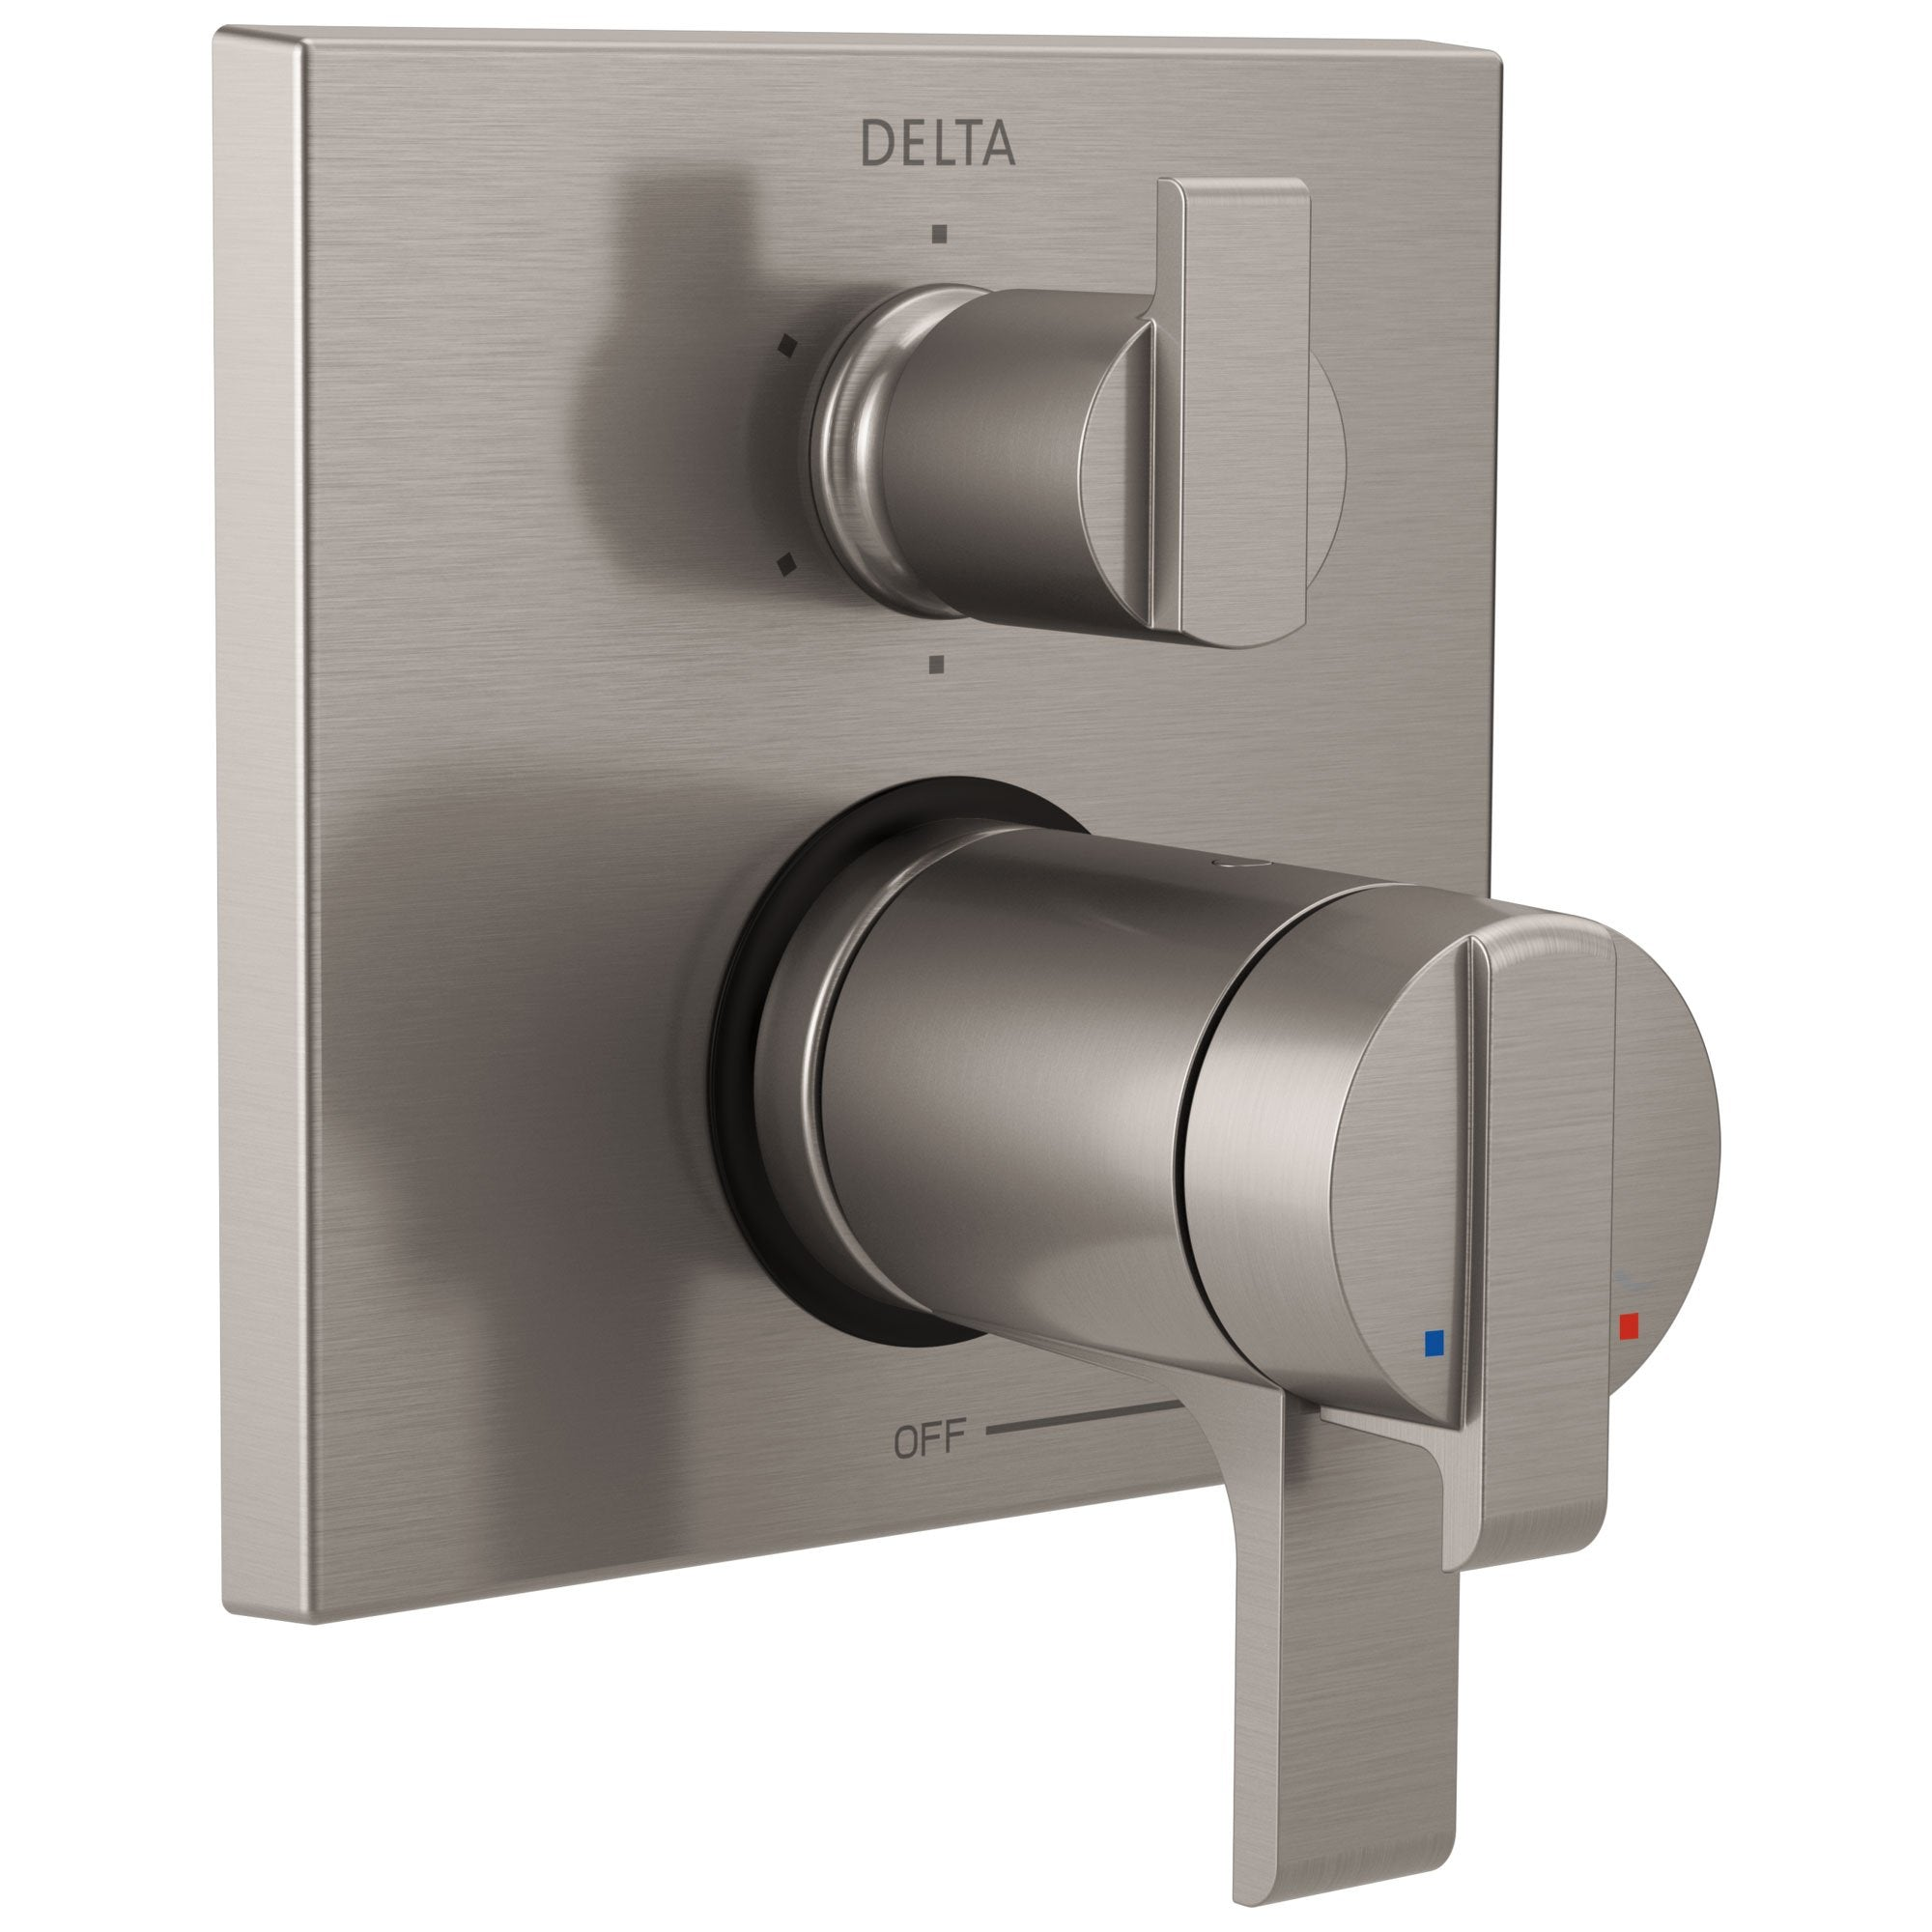 Delta Ara Stainless Steel Finish Thermostatic Shower Faucet Control with 6-Setting Integrated Diverter Includes Trim Kit and Rough-in Valve with Stops D2113V